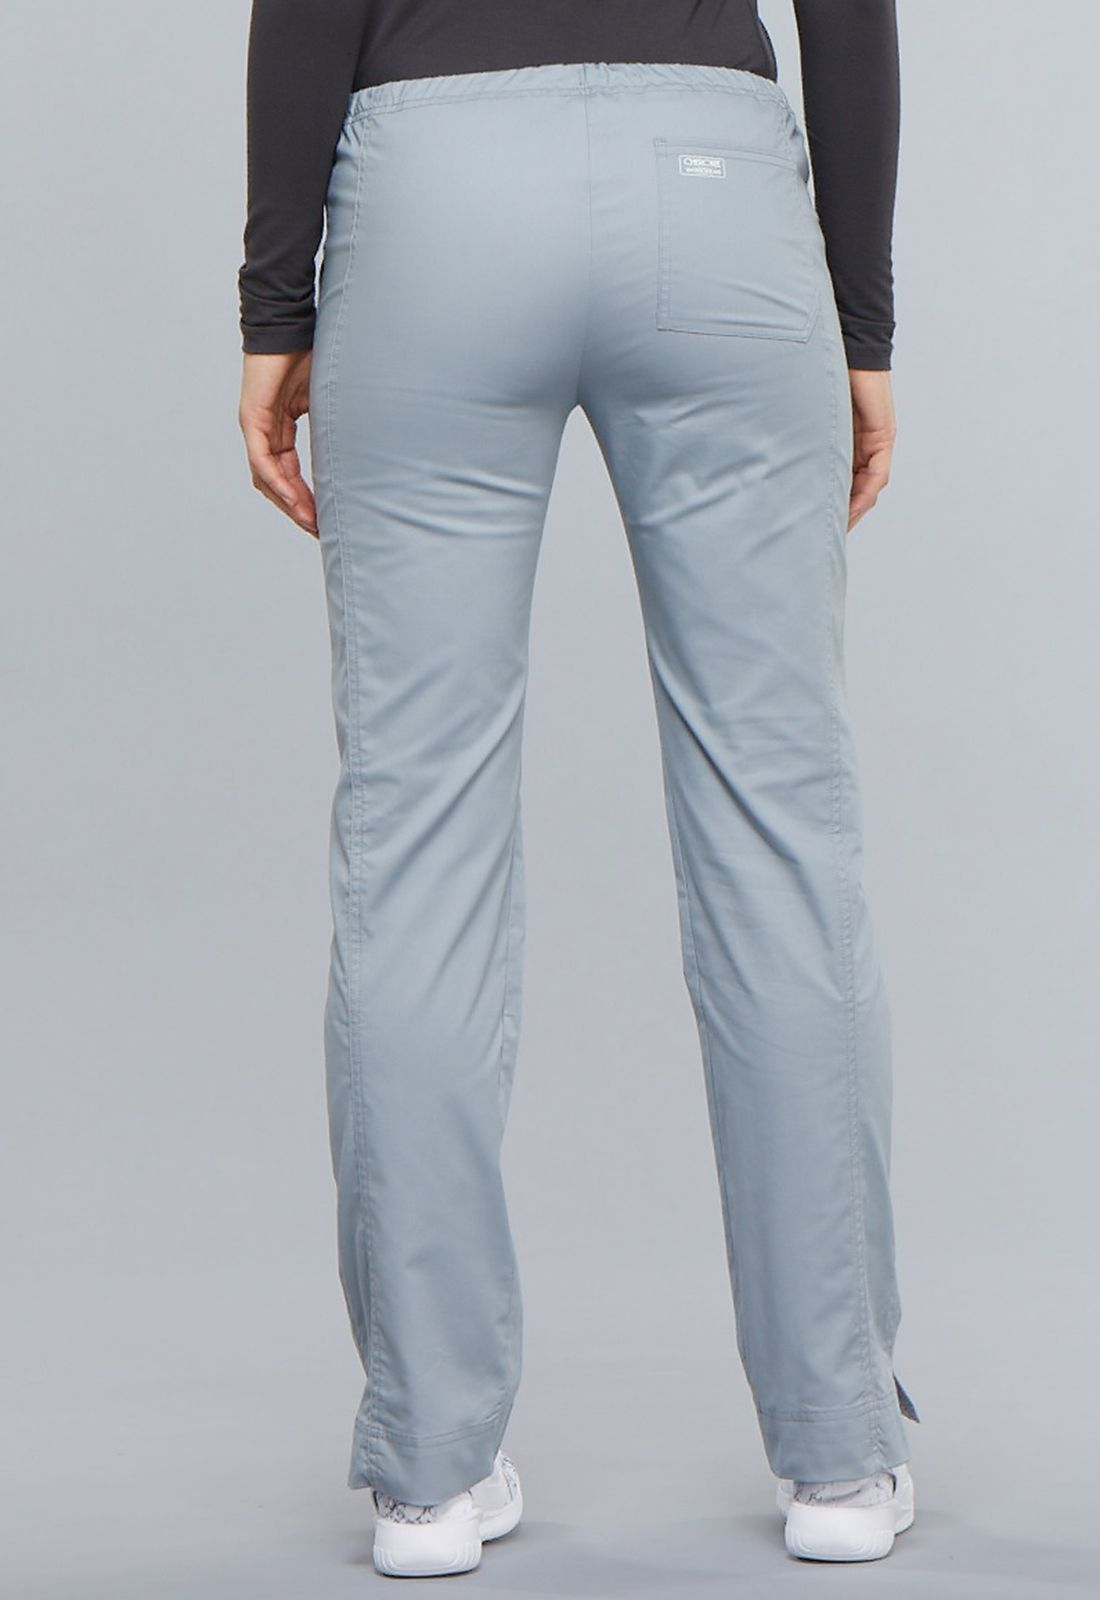 https://medcloth.by/images/stories/virtuemart/product/cherokee-4203-grey-3.jpg